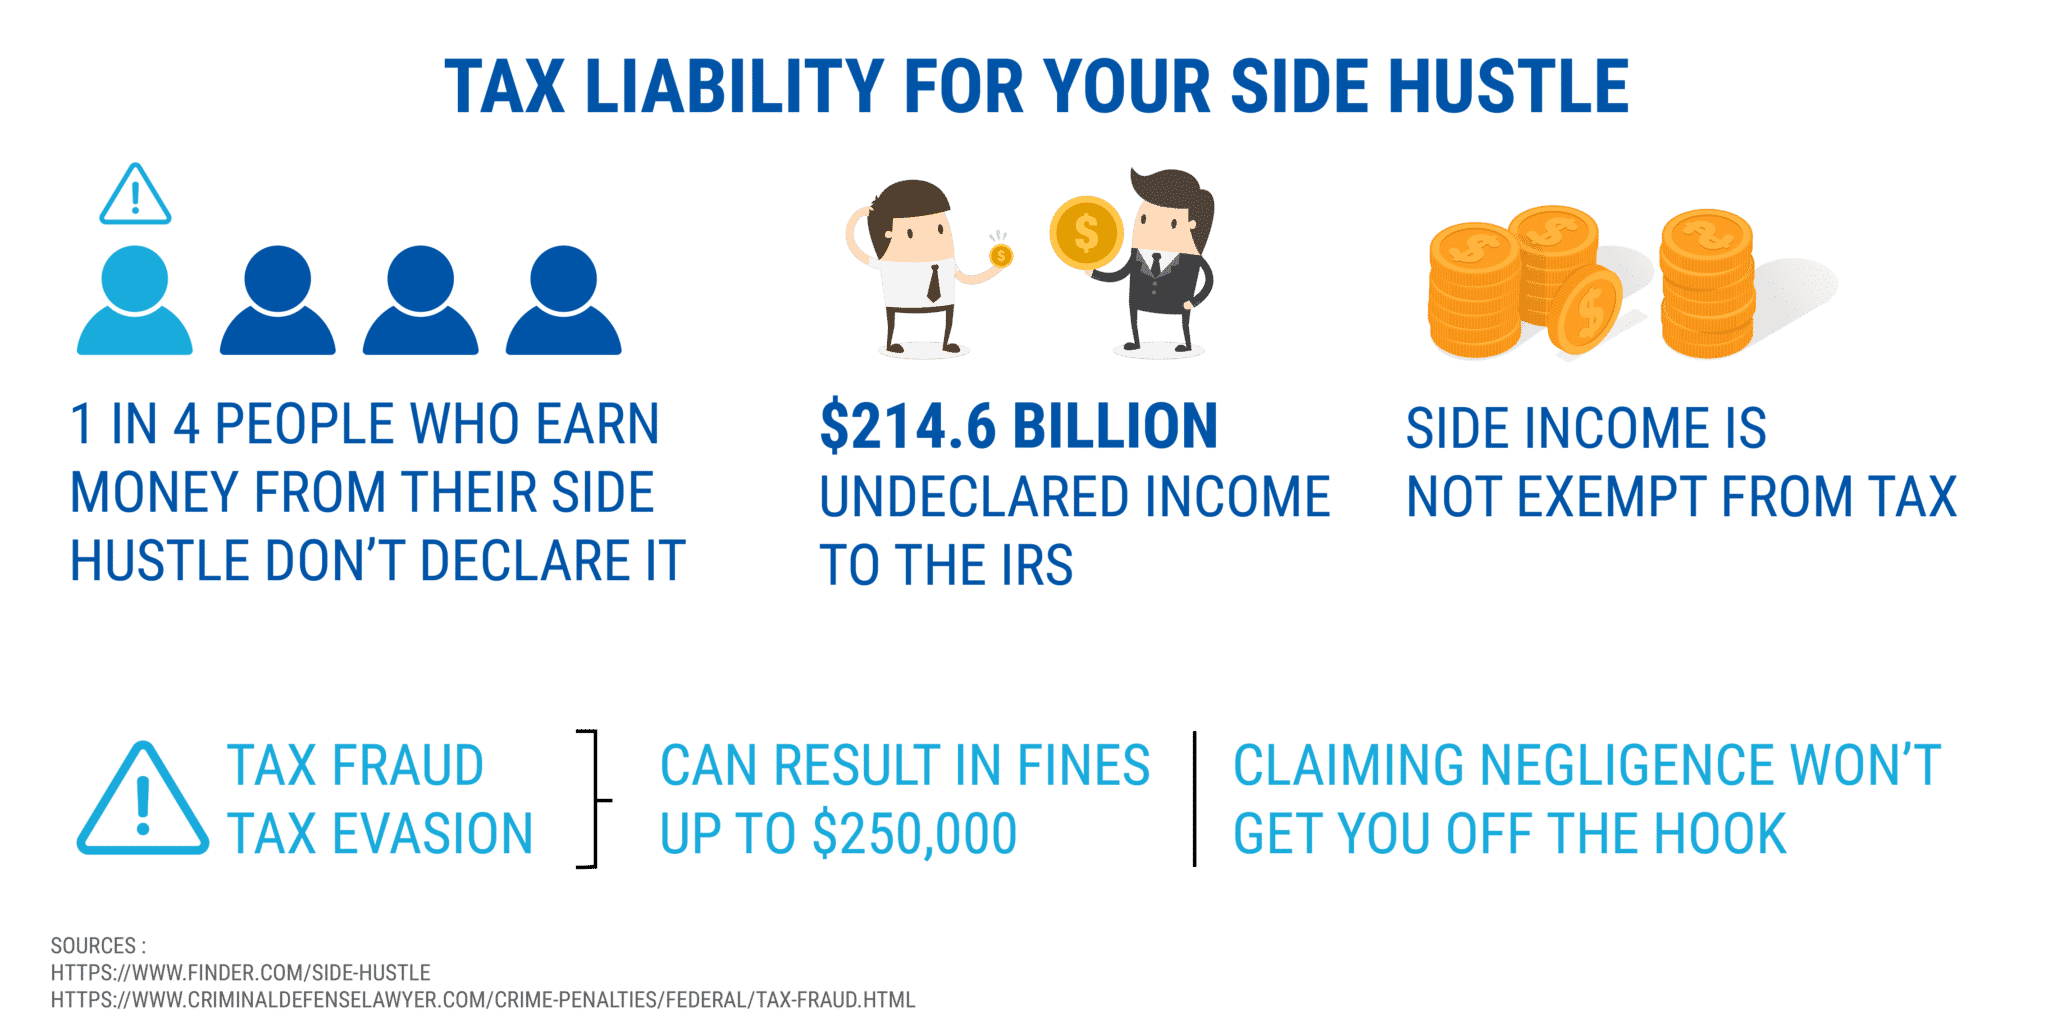 tax liability for your side hustle - starting a coaching business while working full-time